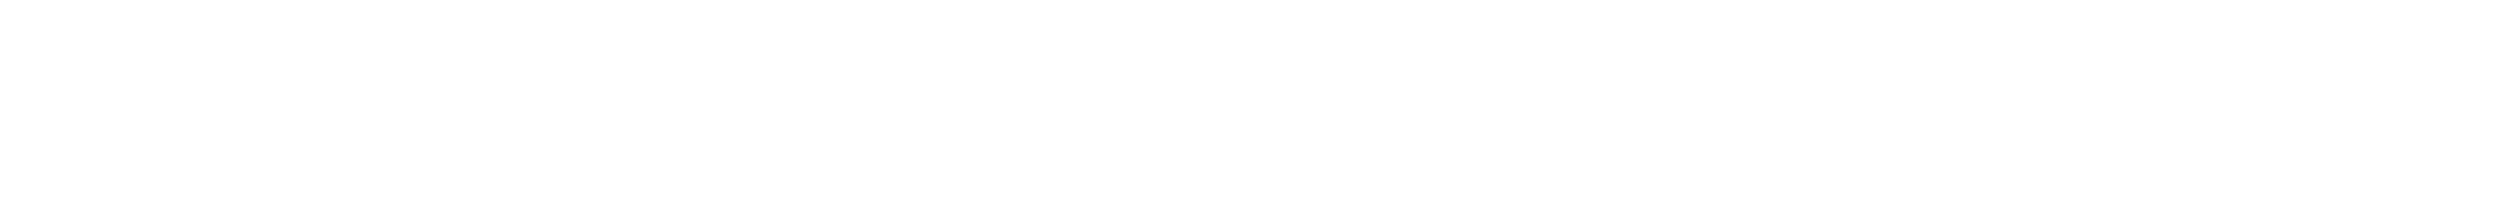 BostonBaroque-logo line-white.png